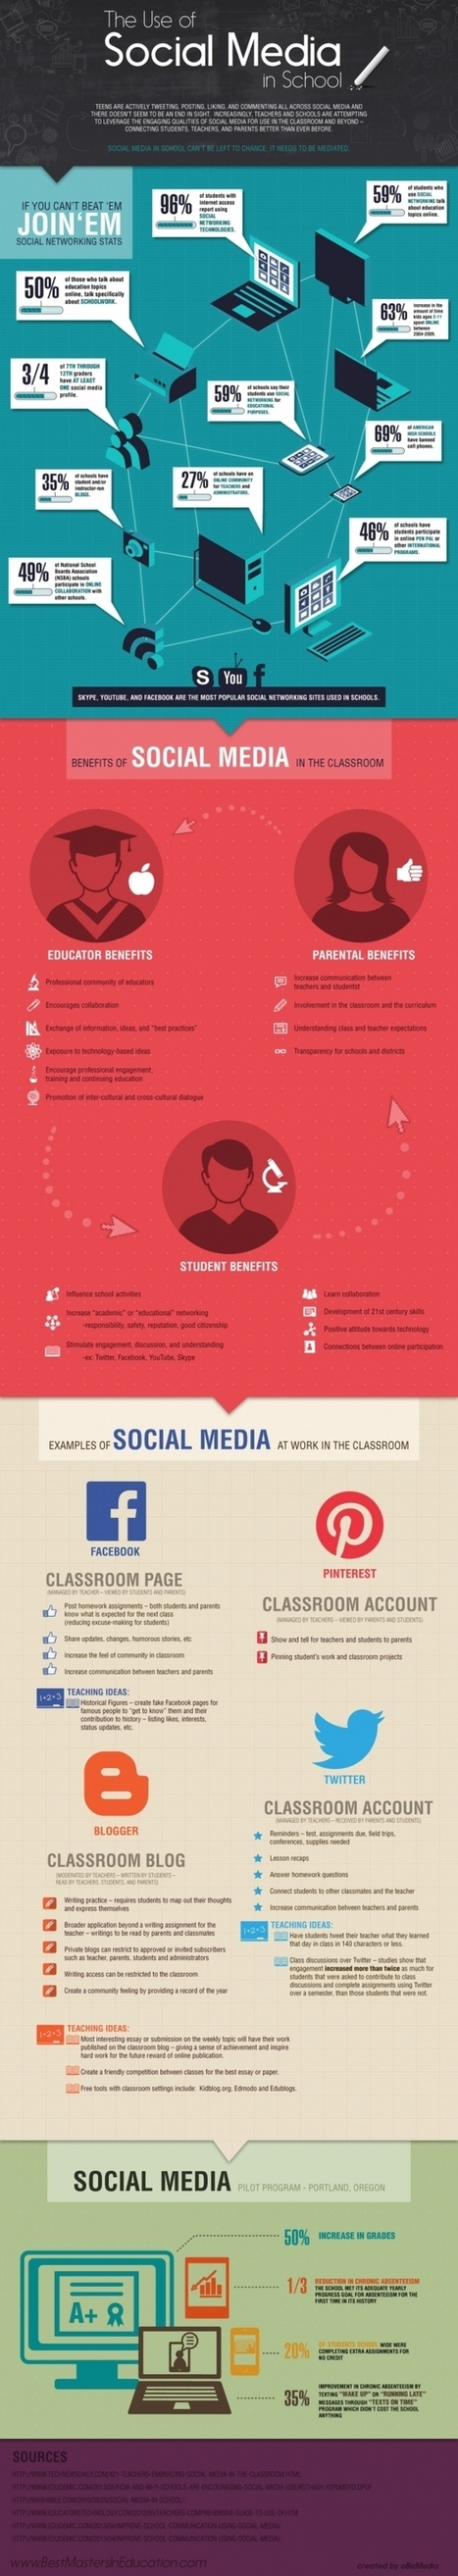 Infographic: The Use of Social Media in School | Educational Use of Social Media | Scoop.it